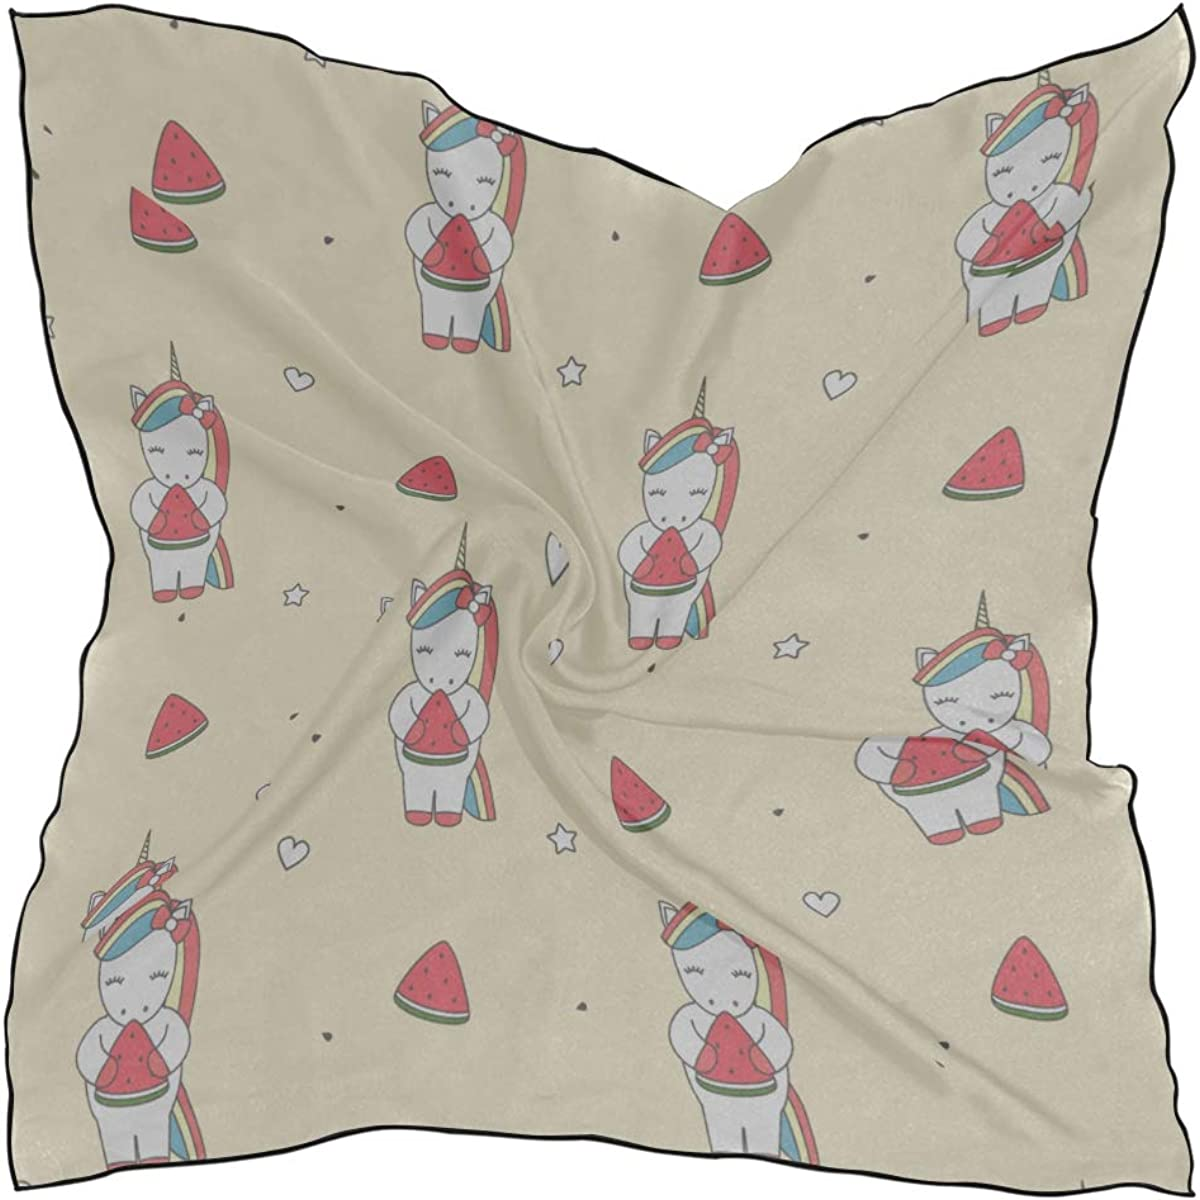 Soft Polyester Silk Small Square Scarf Fashion Print Children Friend Unicorn Down Scarf Scarfs For Girls Hair Scarf For Sleeping Multiple Ways Of Wearing Daily Decor